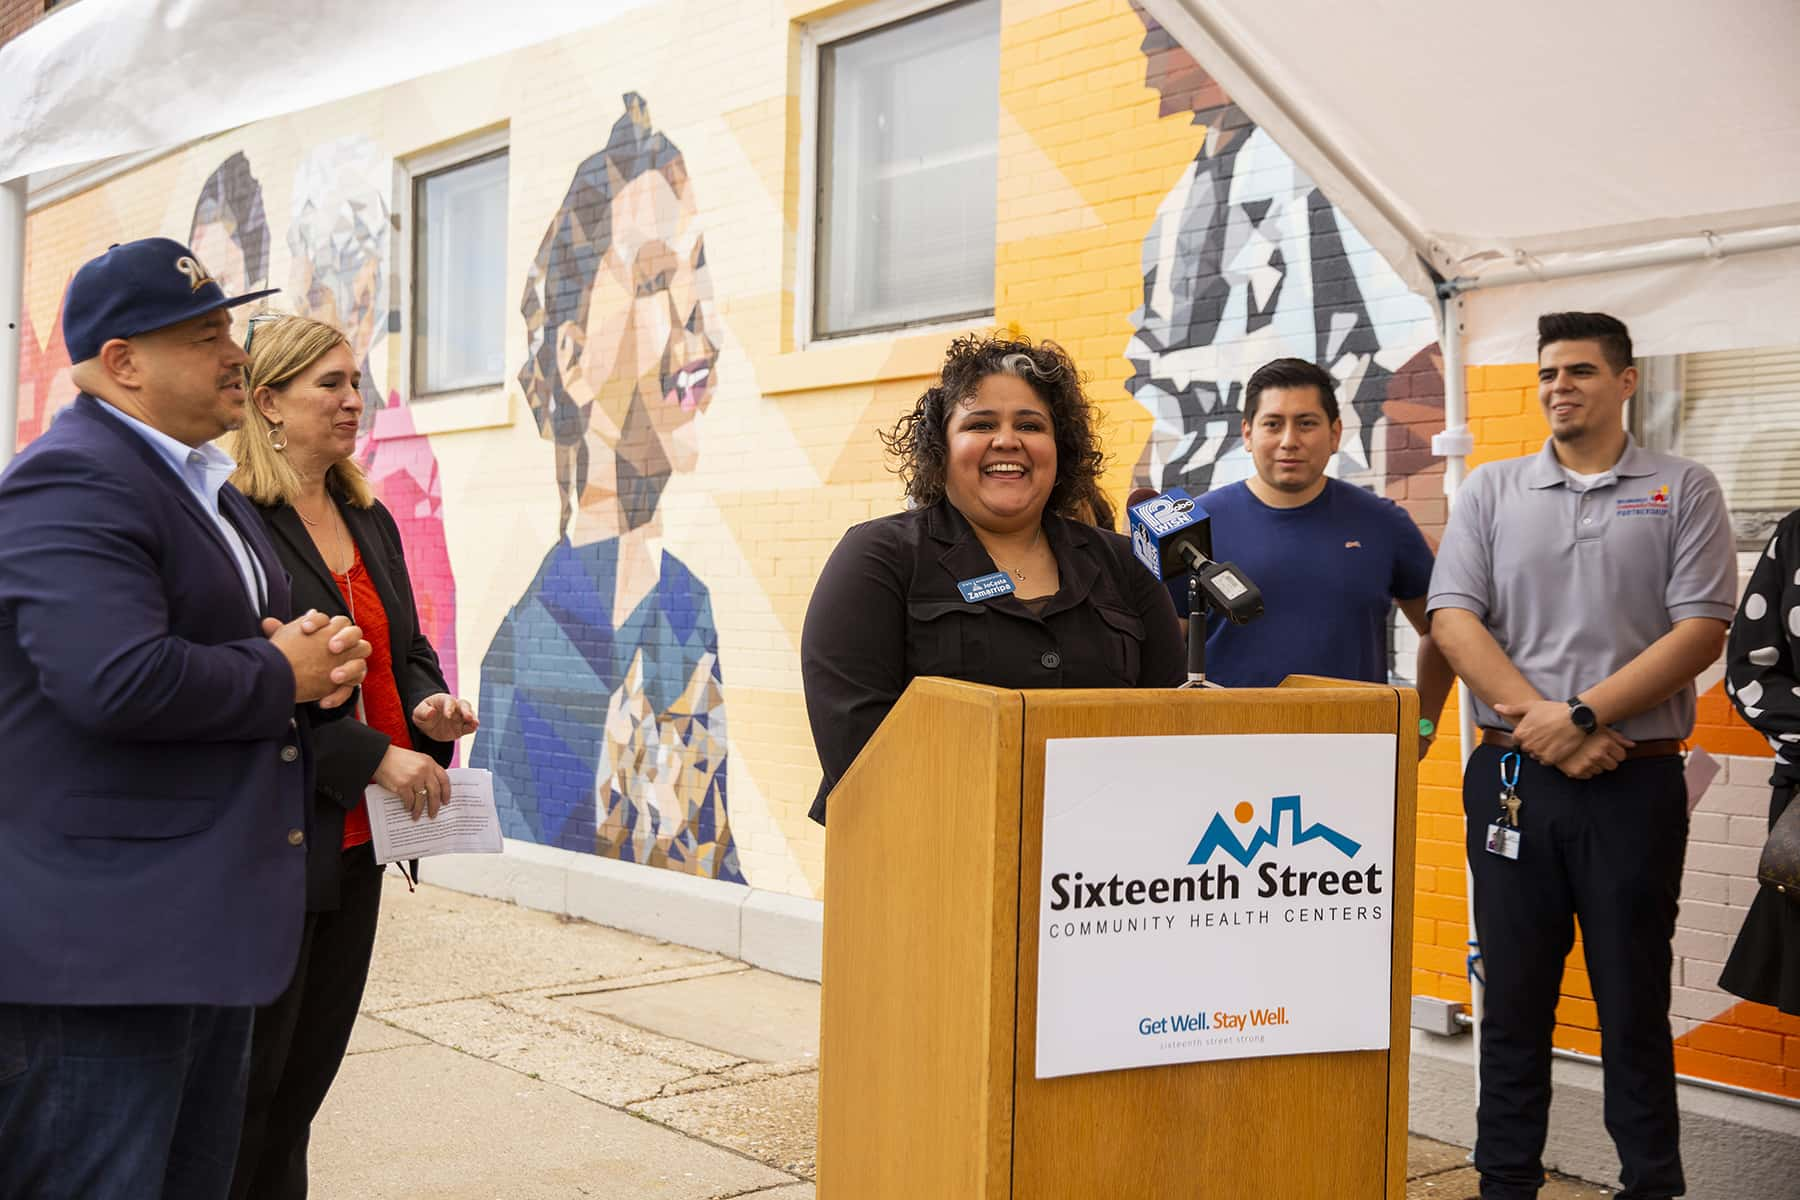 051219_16thstmural50th_11